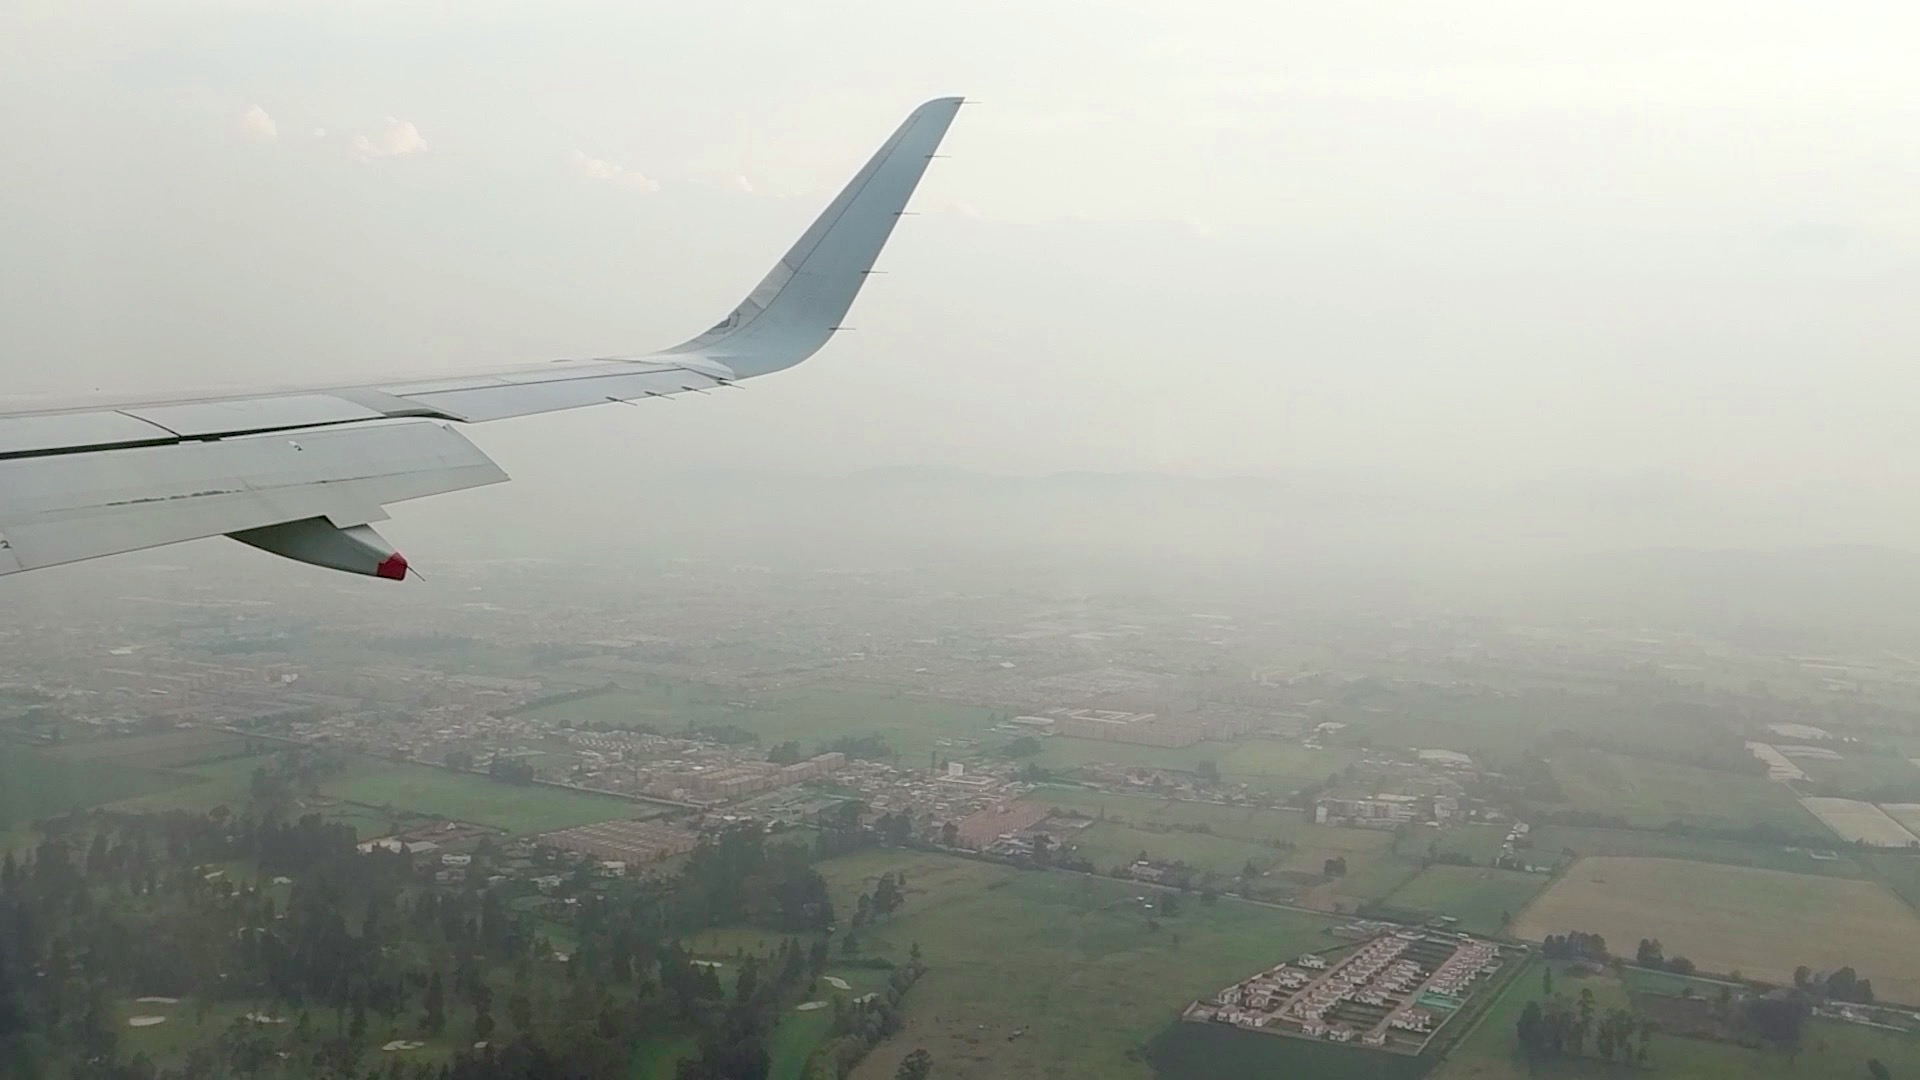 Touching down in foggy (and smoggy) Bogotá